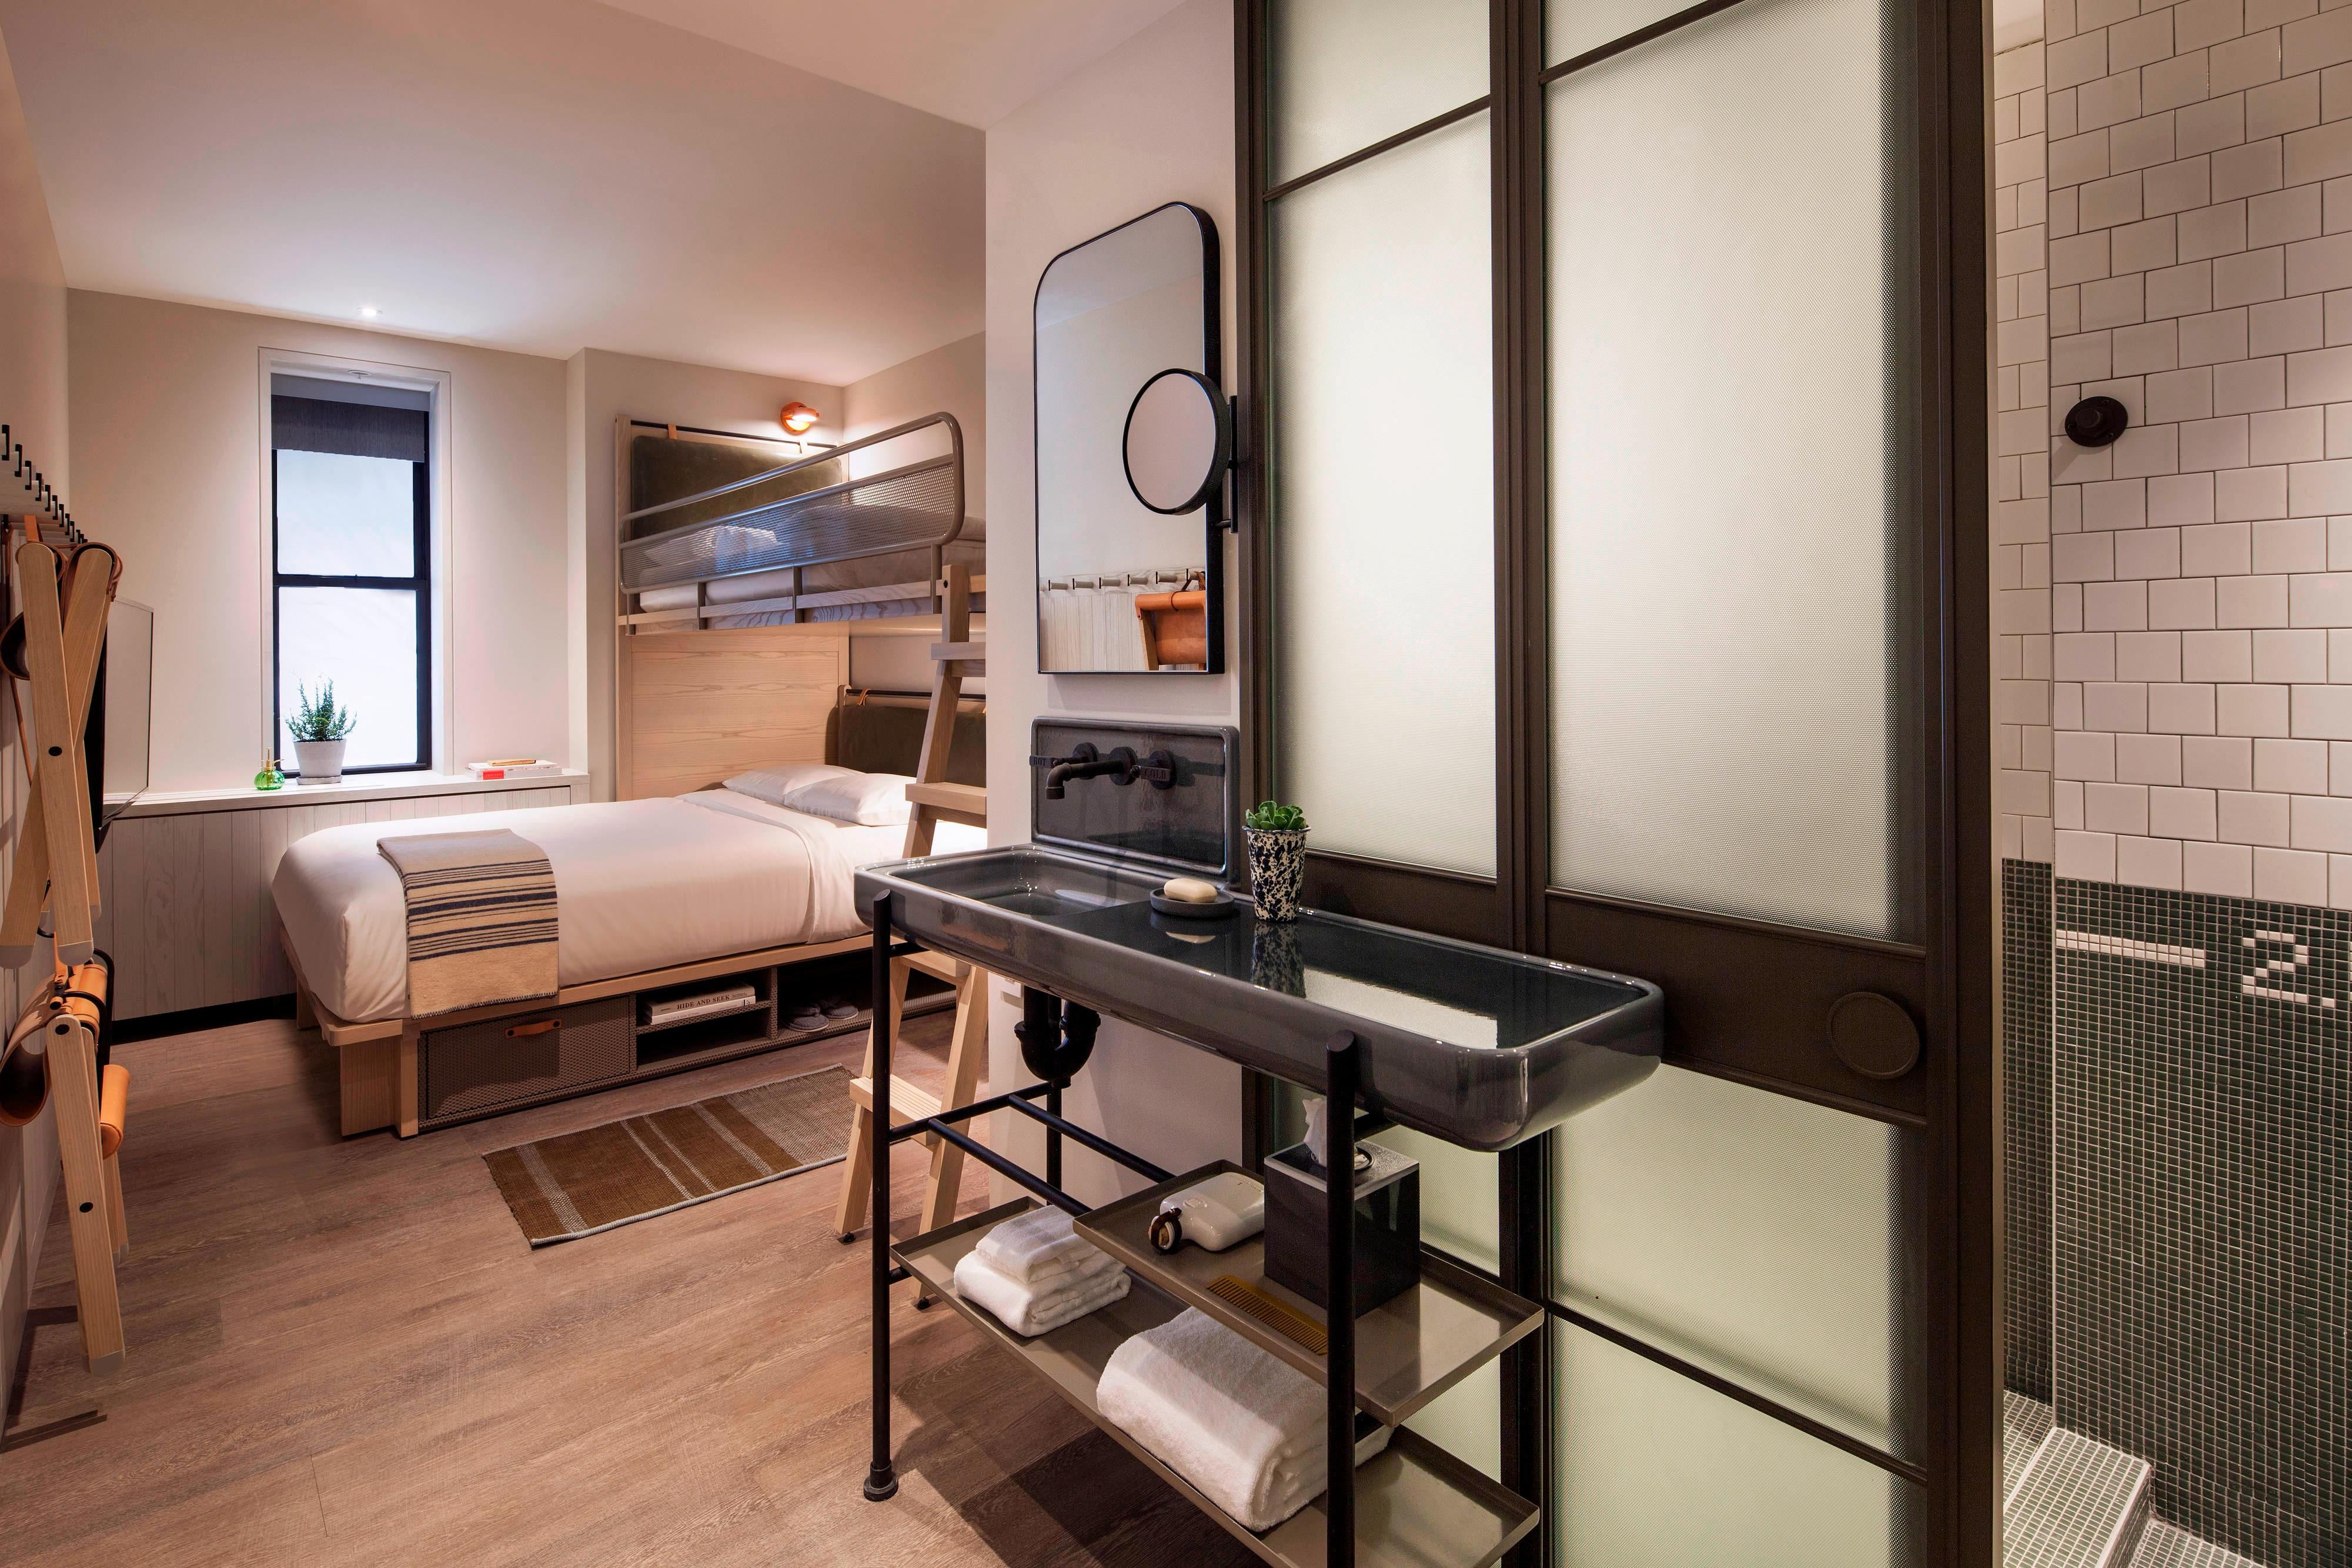 Trendy Micro Hotel In NYC